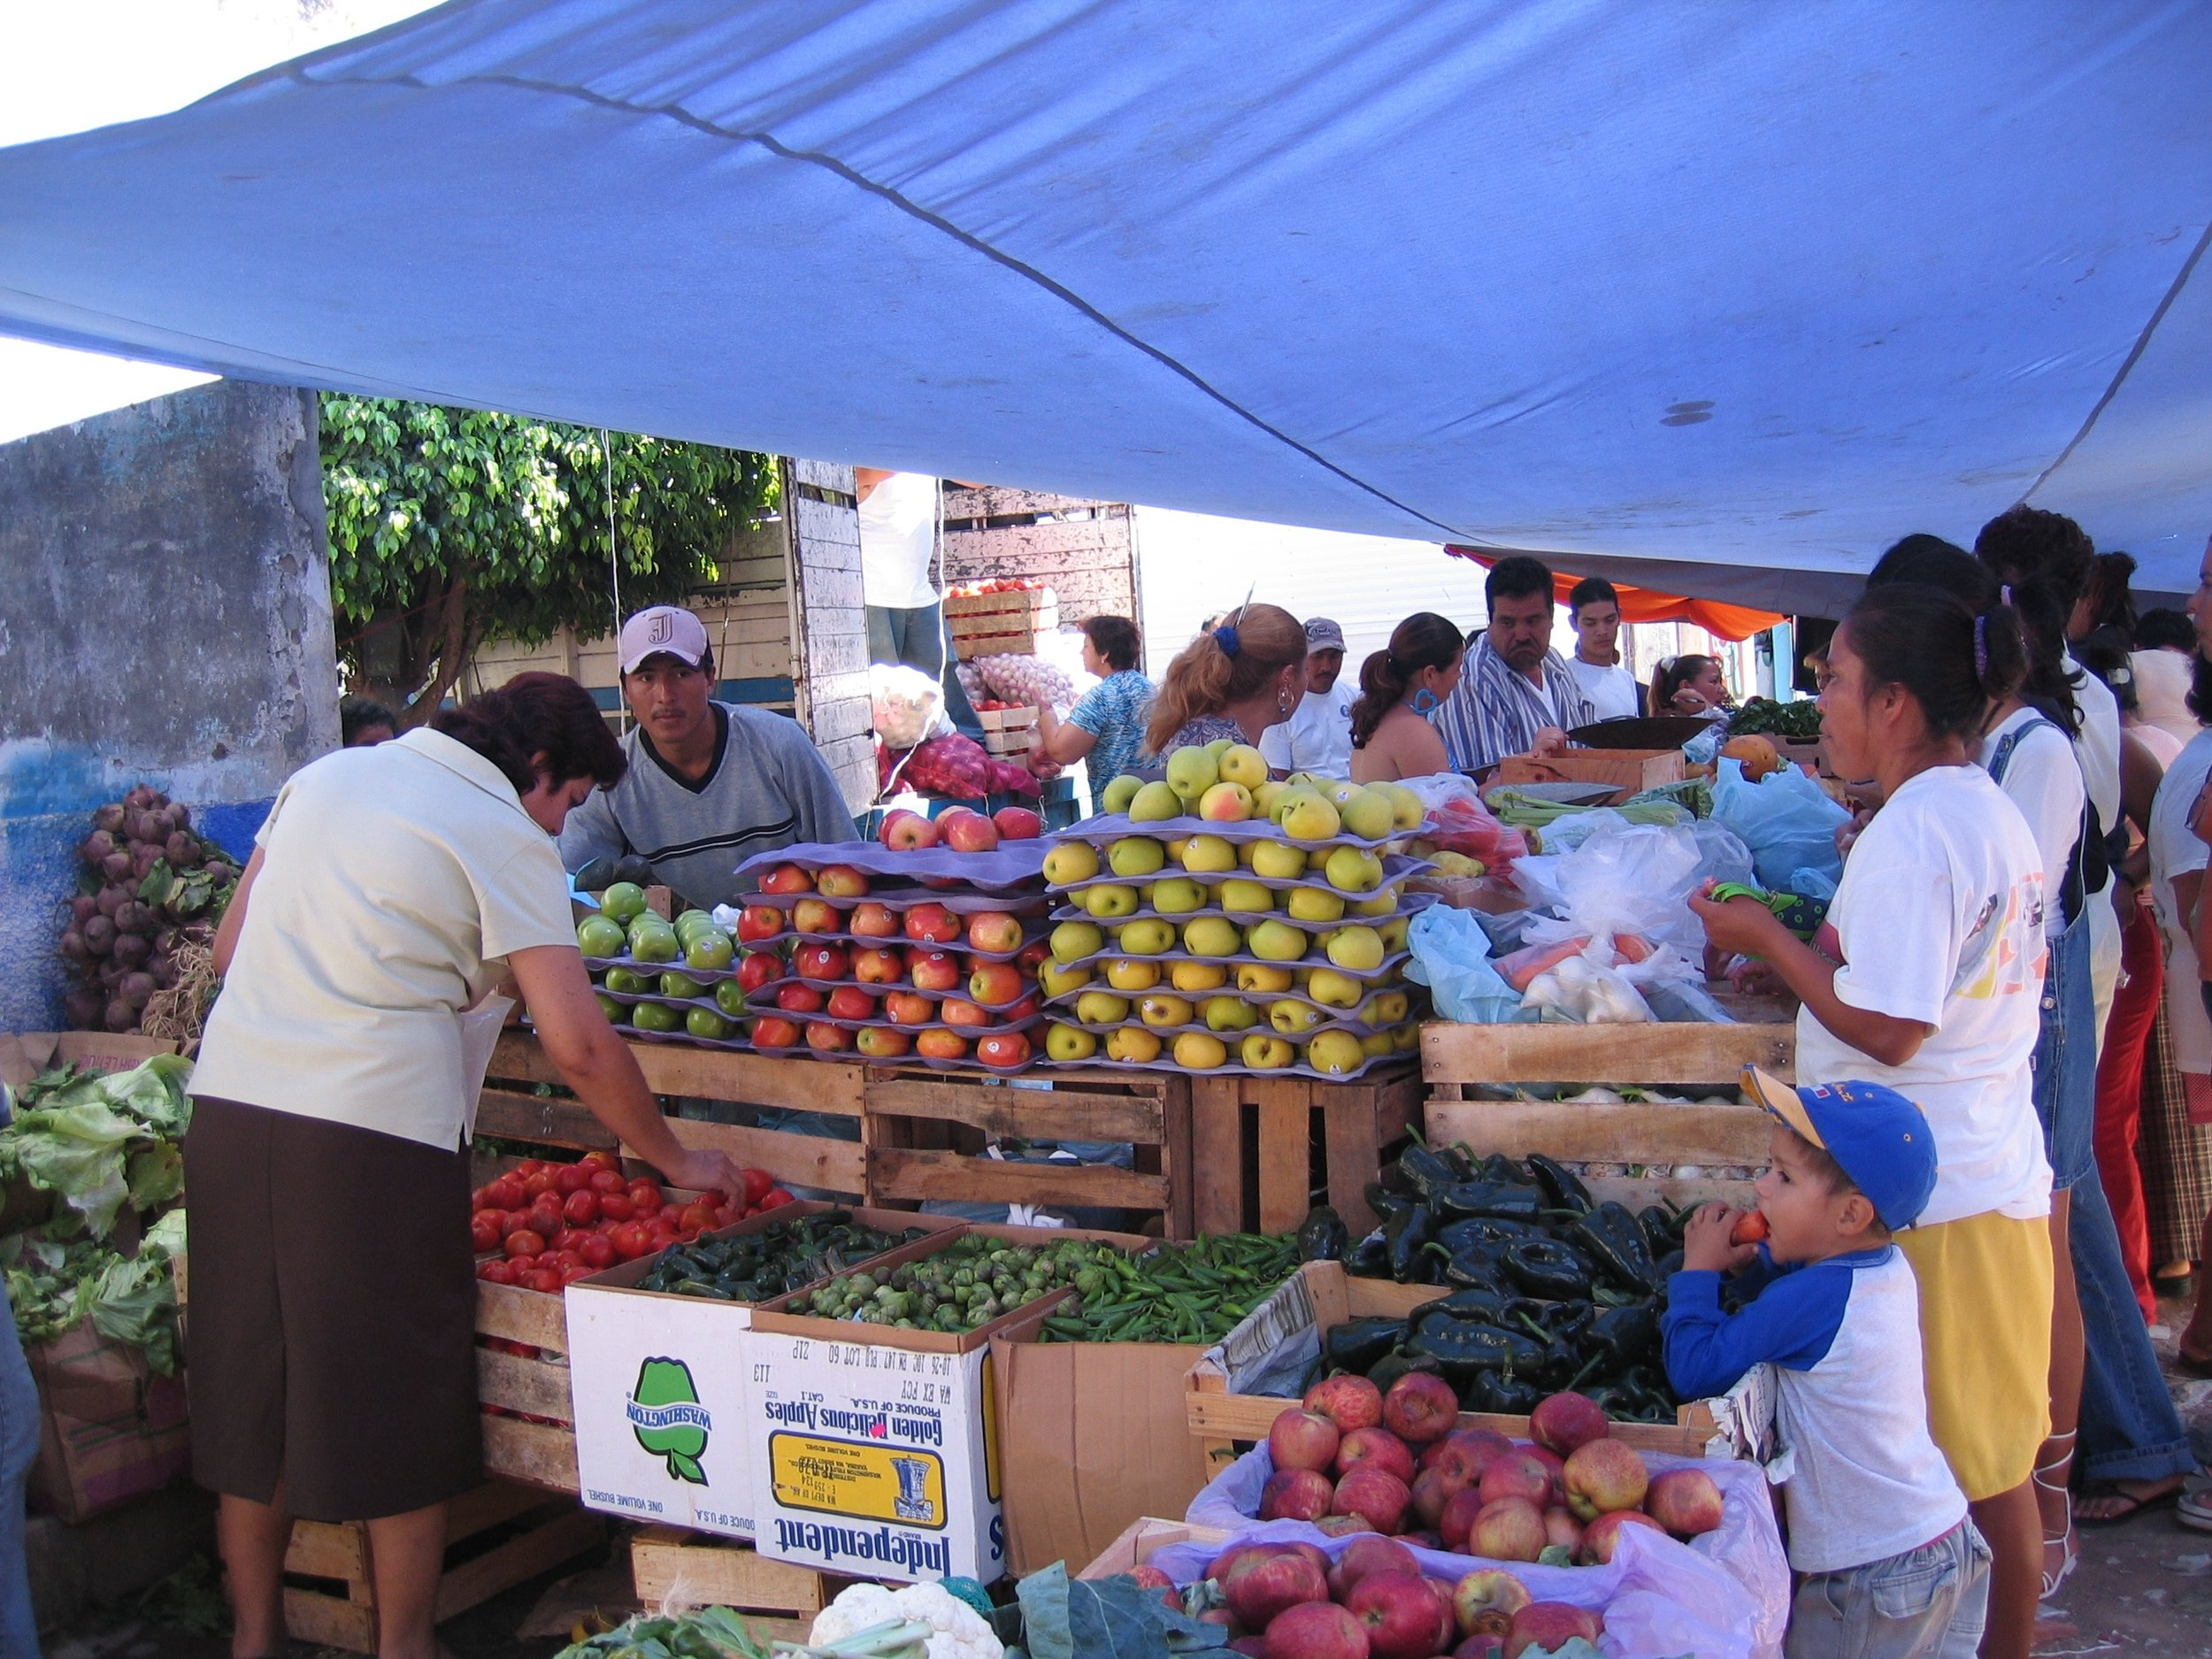 the central vegetable and fruit stand.